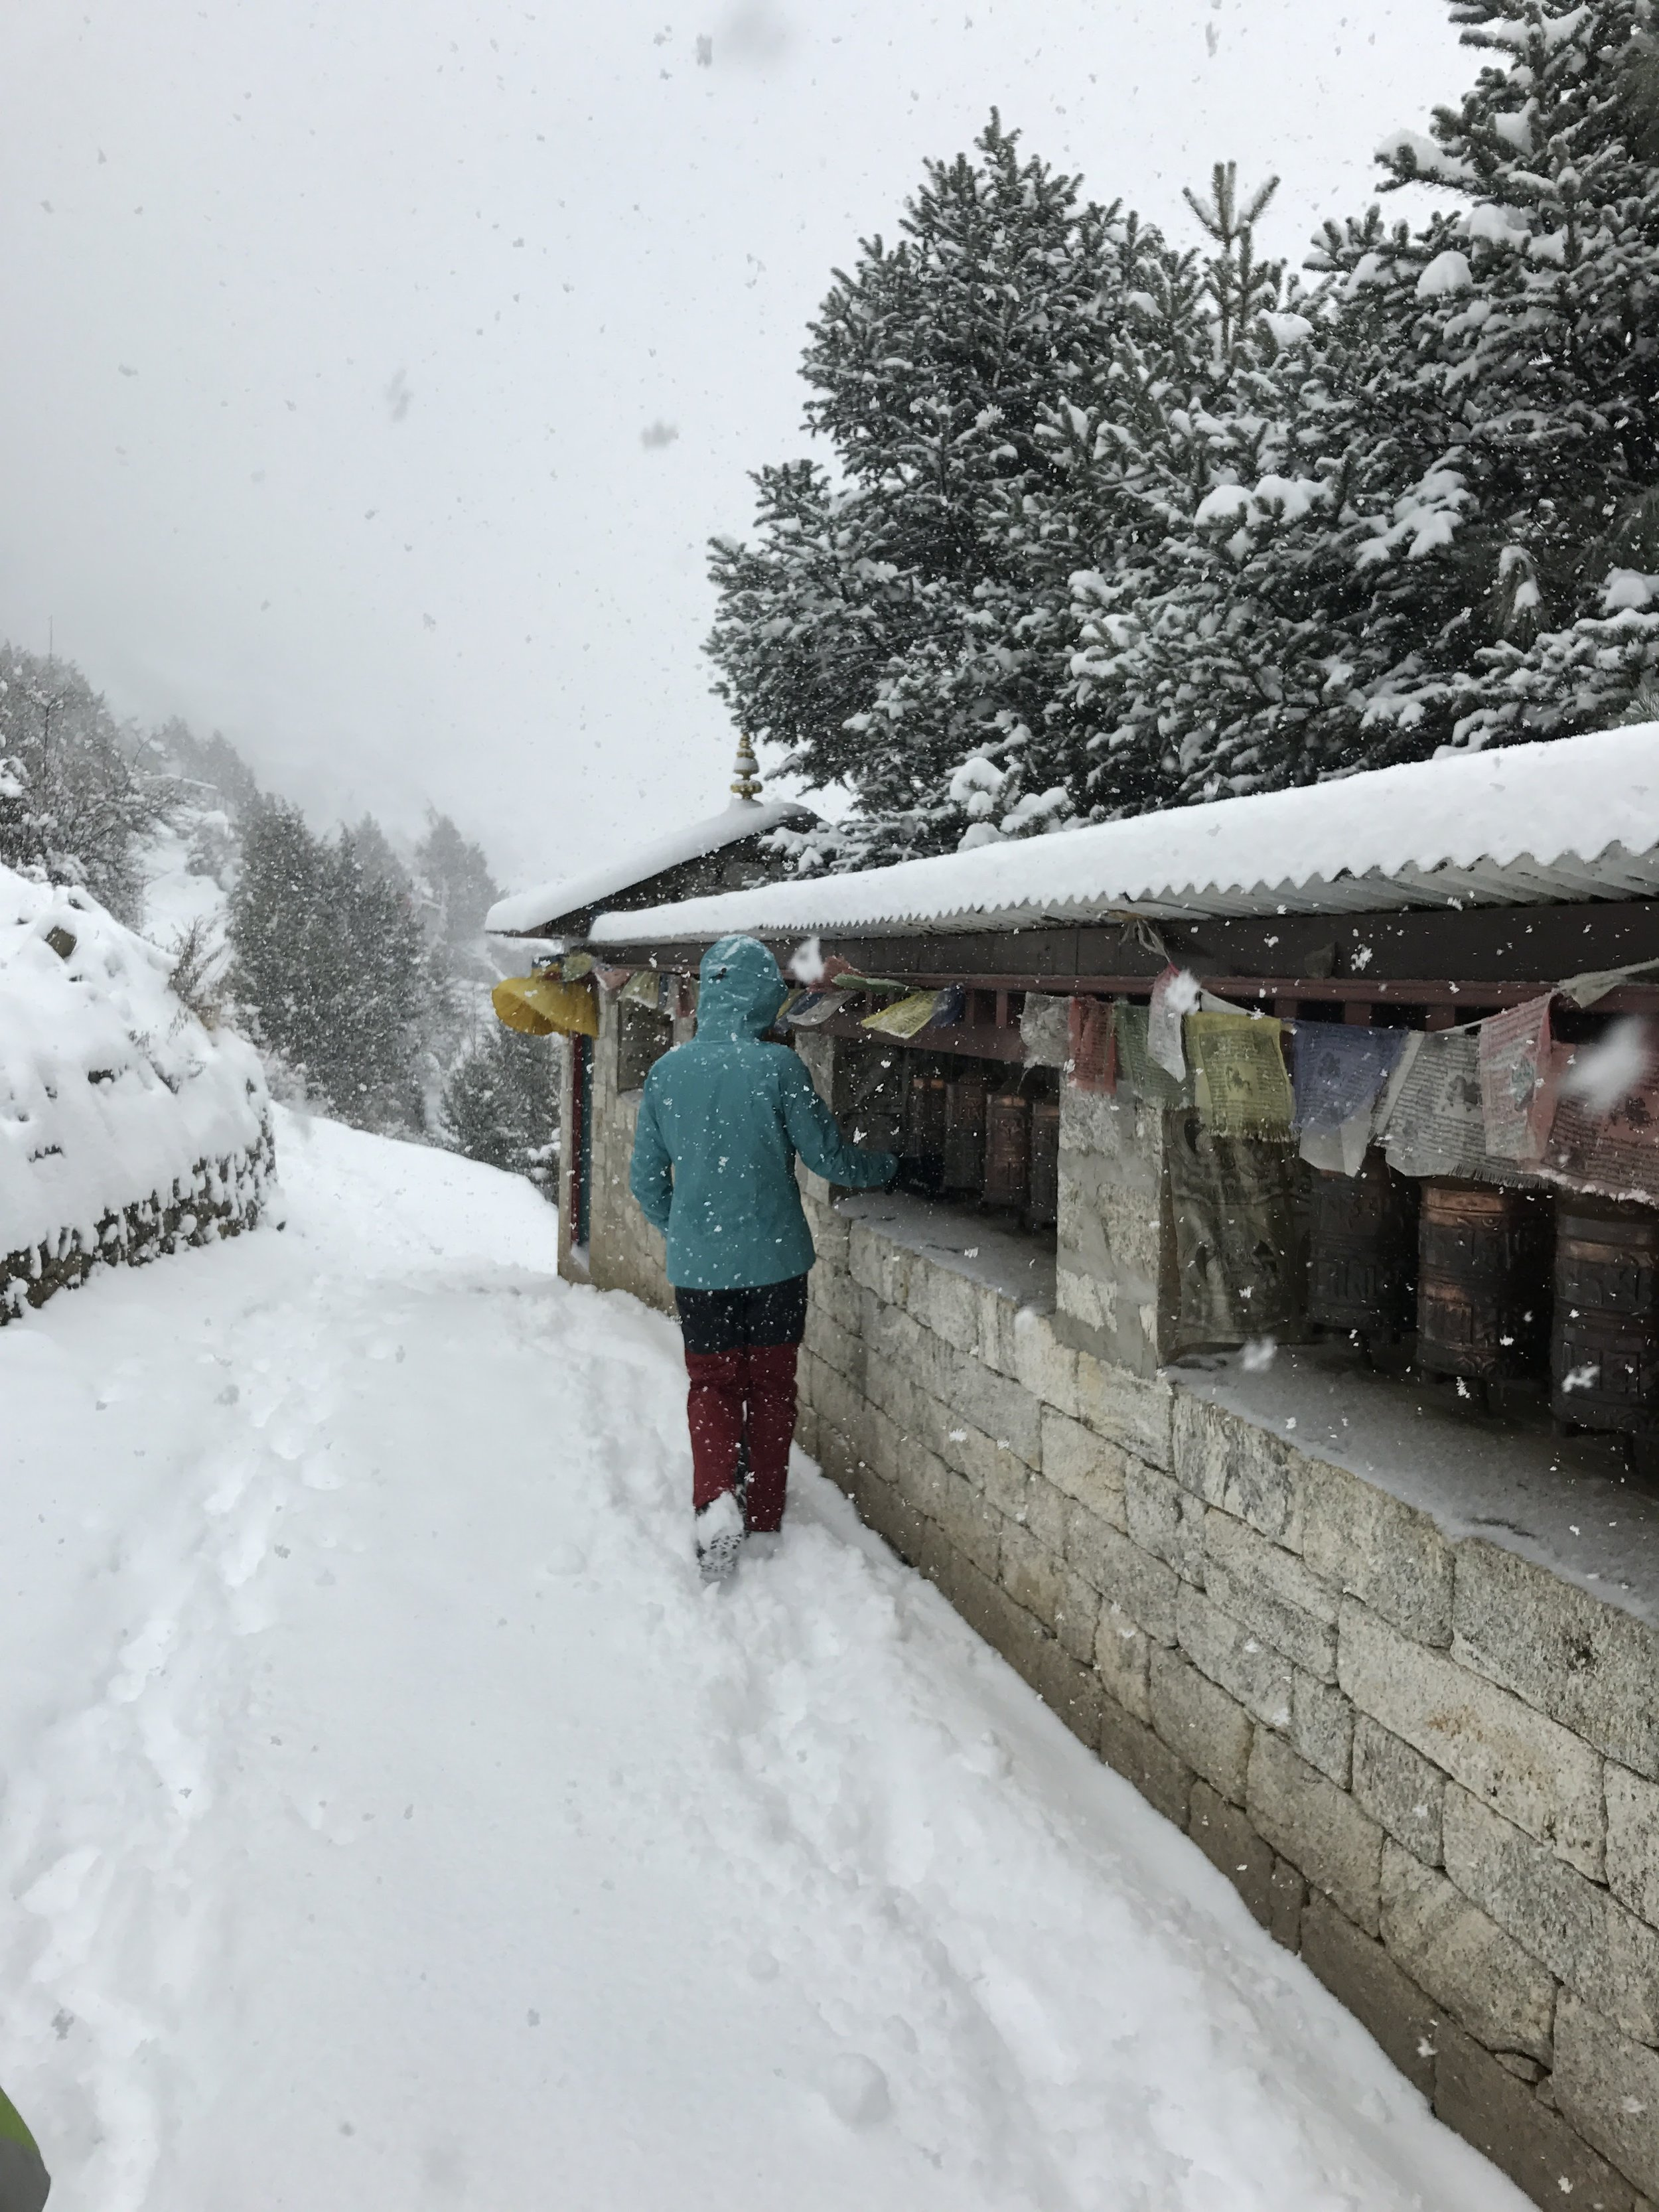 "During our time in Namche it snowed 18"" in a day. I never thought I'd be able to say I was caught in a Himalayan snowstorm!"